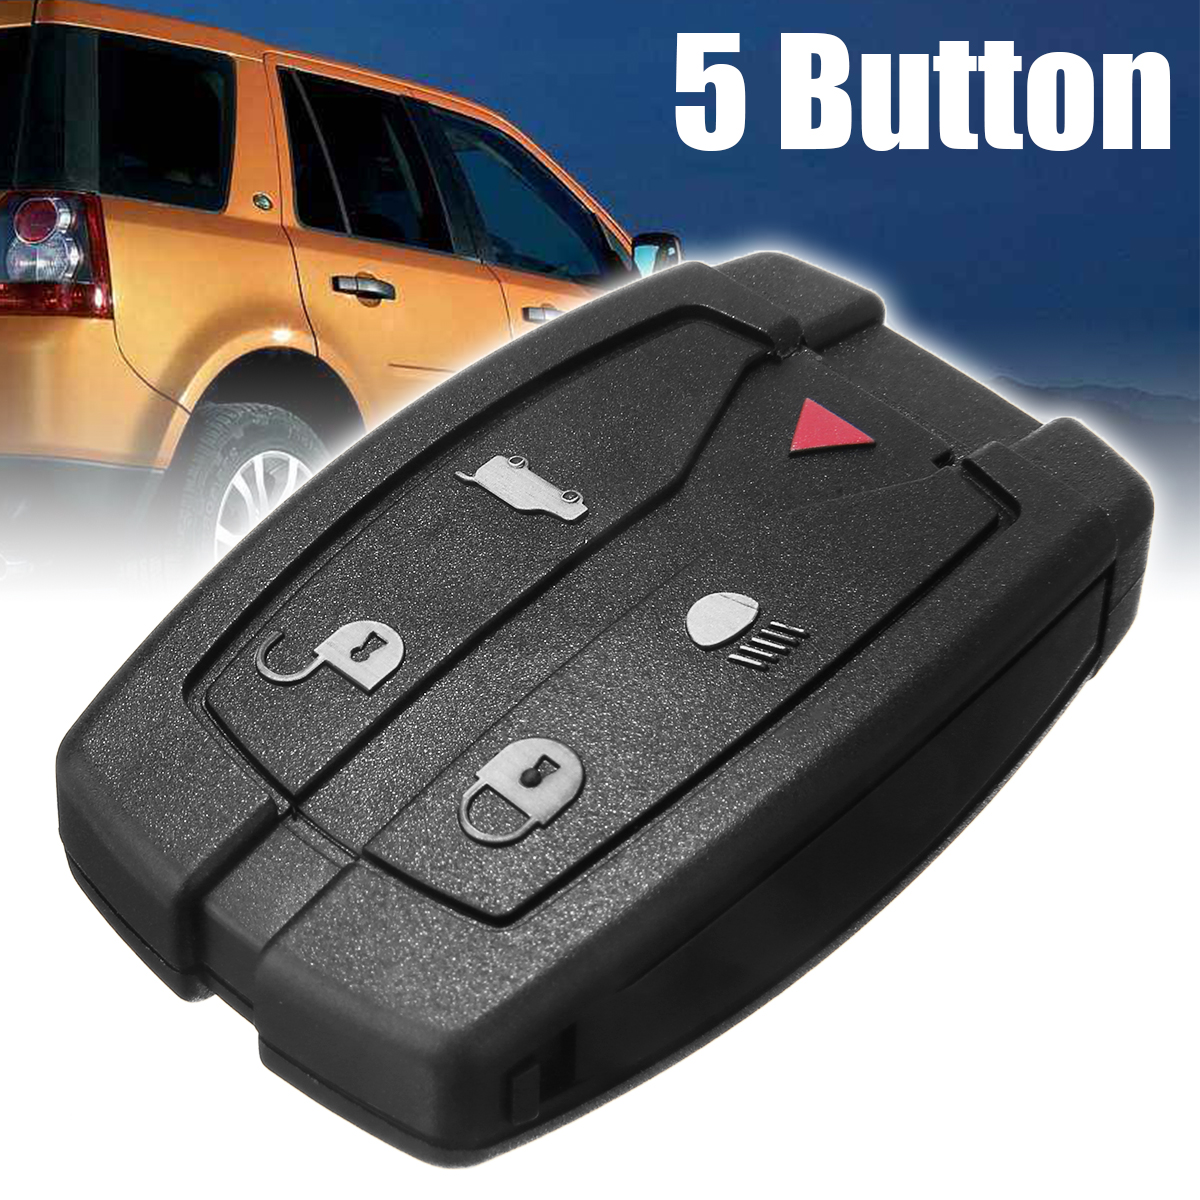 5 Buttons Remote Key Fob Shell Durable Replacement Car Key Case Blade For Land Rover Freelander 2 Ignition System